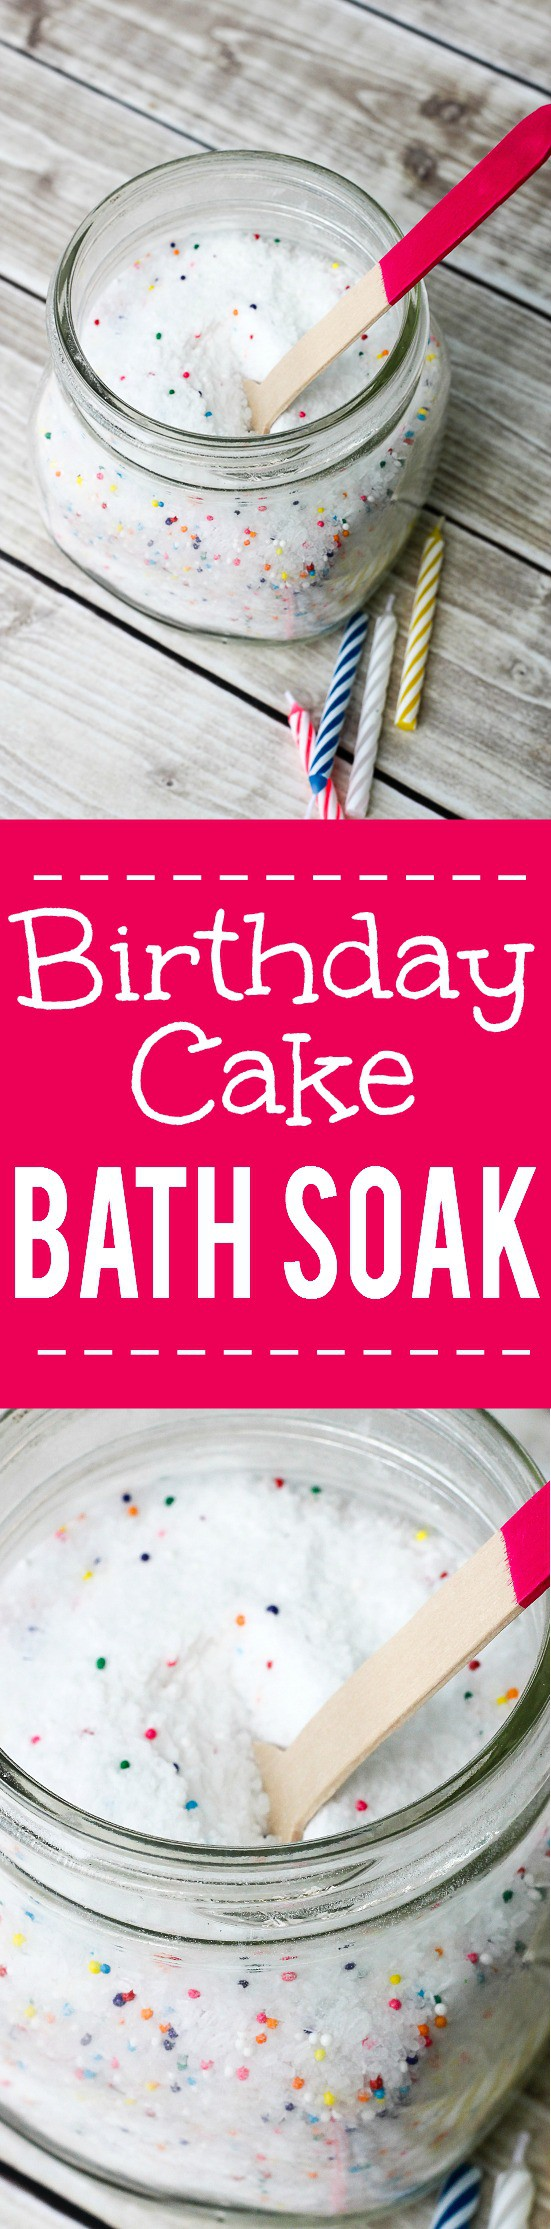 DIY Birthday Cake Bath Salts Tutorial - Relax and celebrate your birthday everyday with these DIY homemade Birthday Cake Bath Salts. This bath soak is also a yummy DIY gift idea. Check out the tutorial! Ooooh! Love this! I think it would make a great gift idea for tweens too!